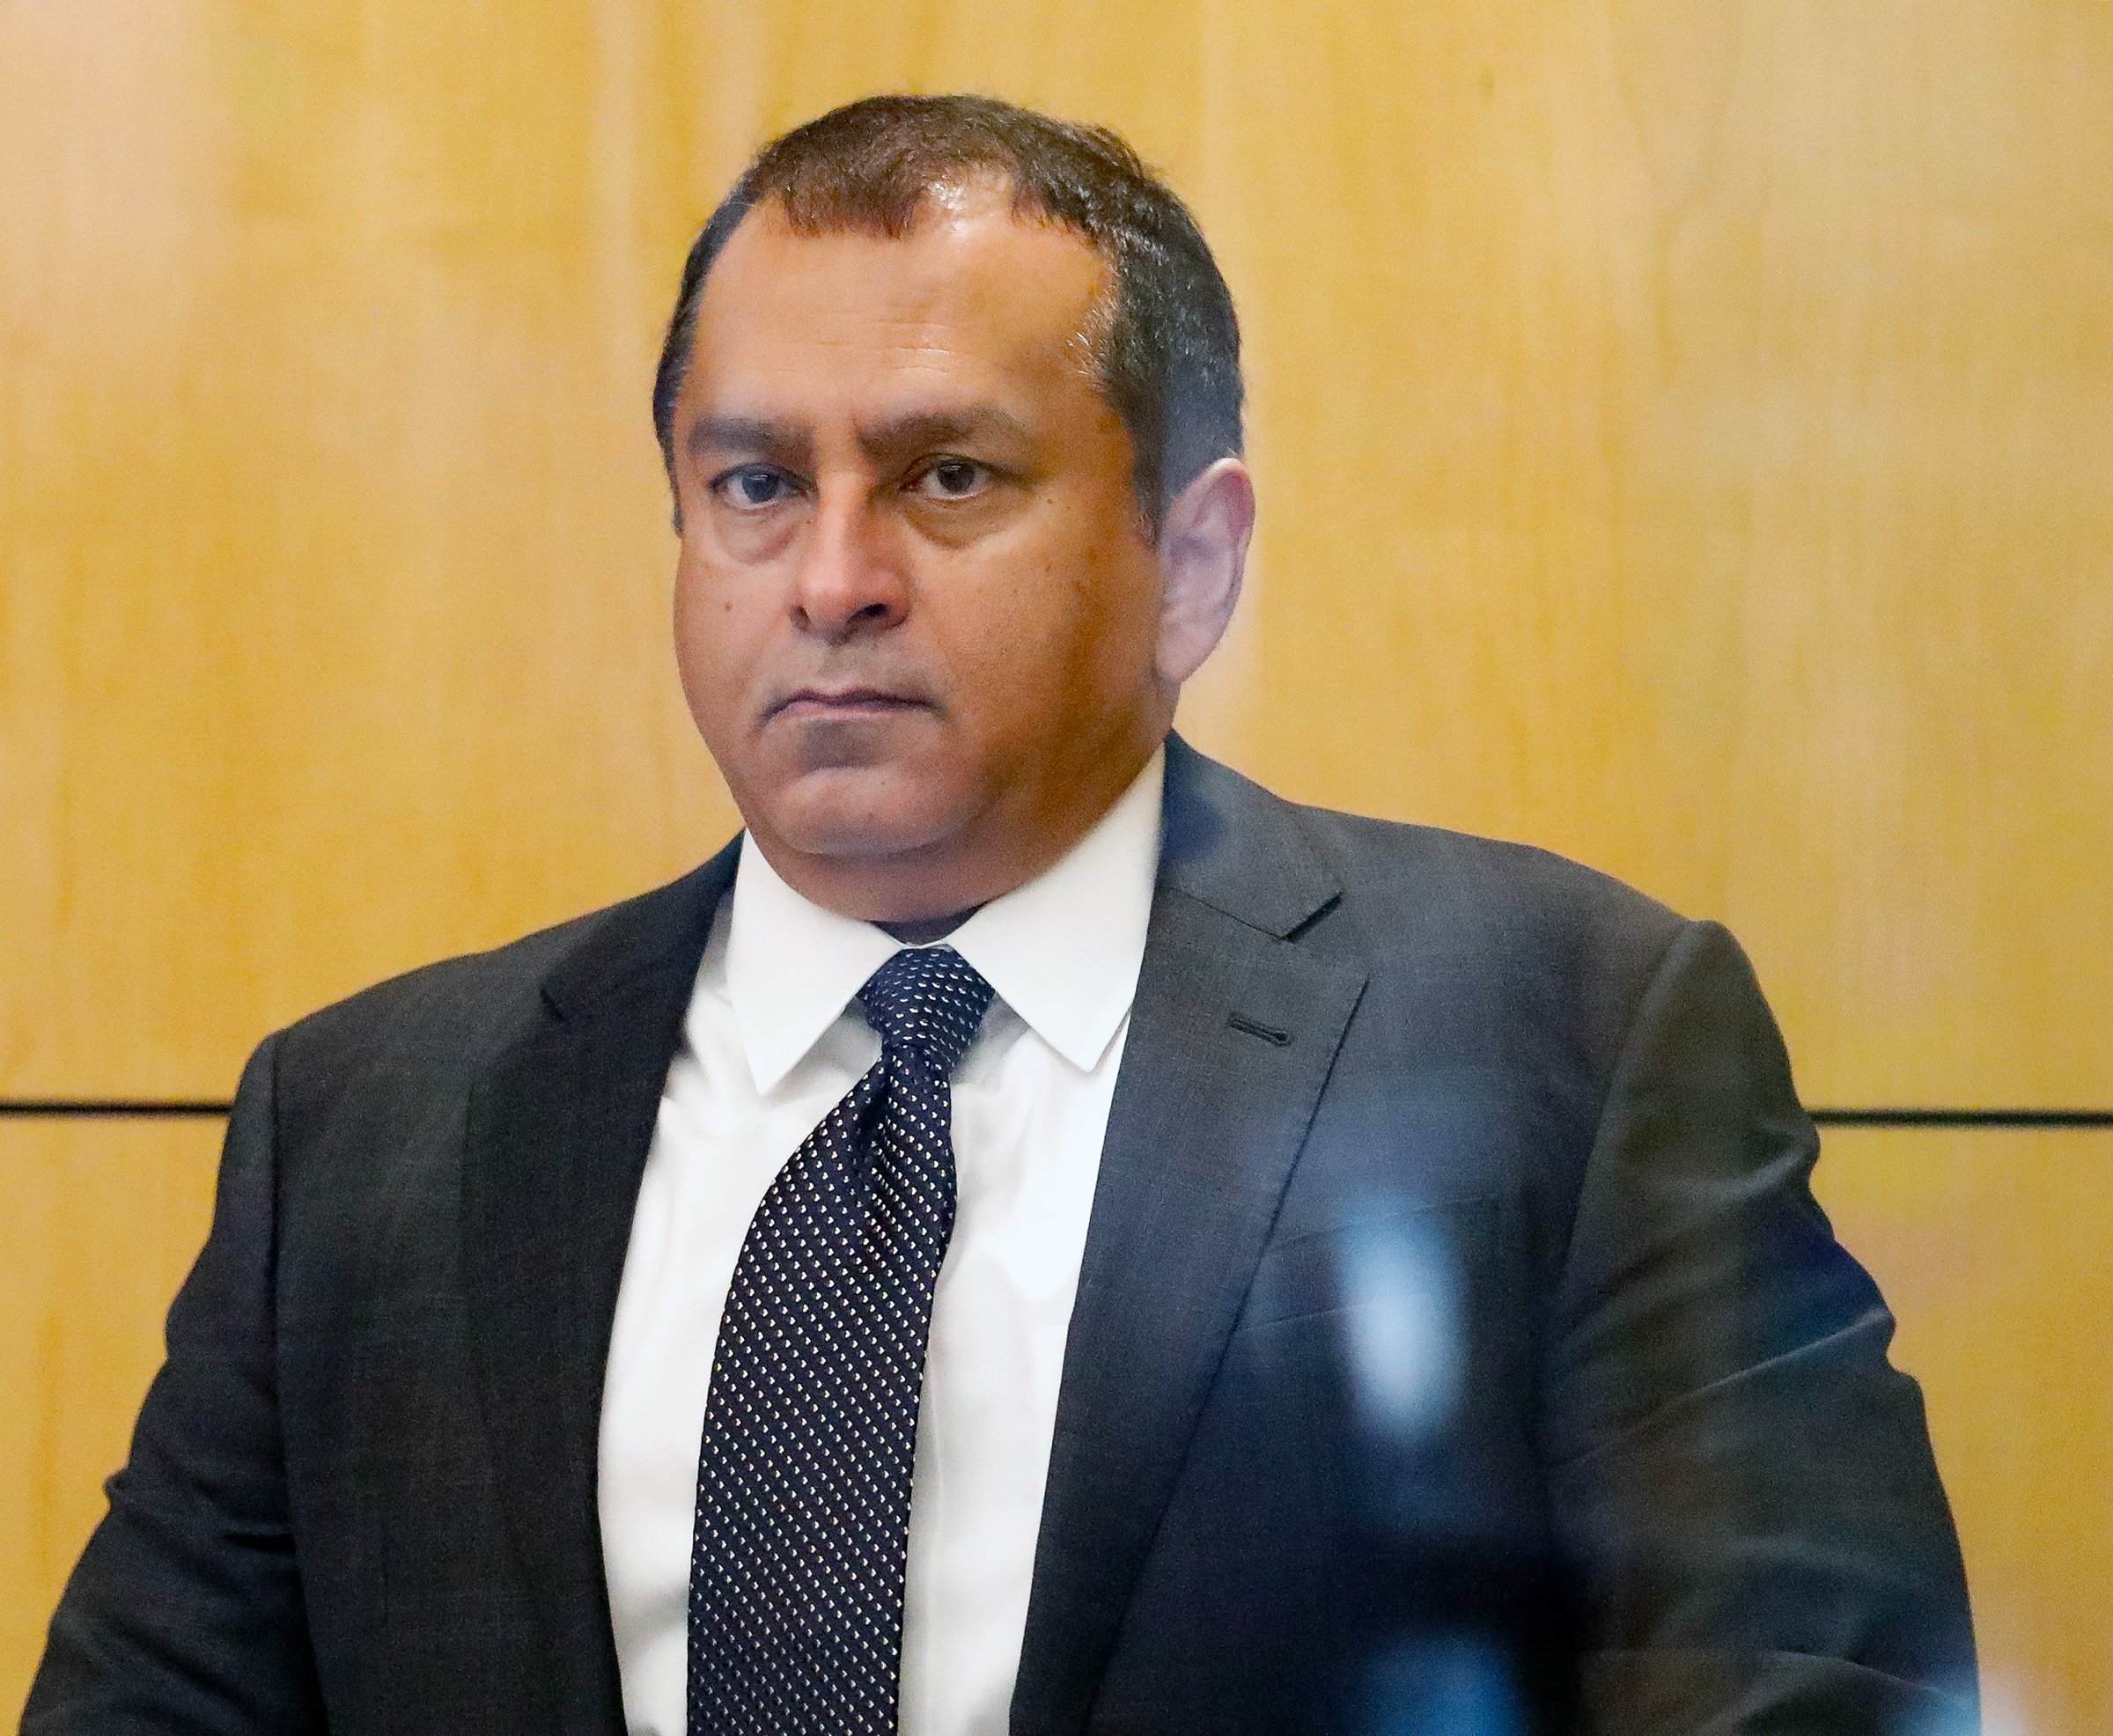 Former Theranos COO Ramesh Balwani appears in federal court for a status hearing on July 17, 2019 in San Jose, California.